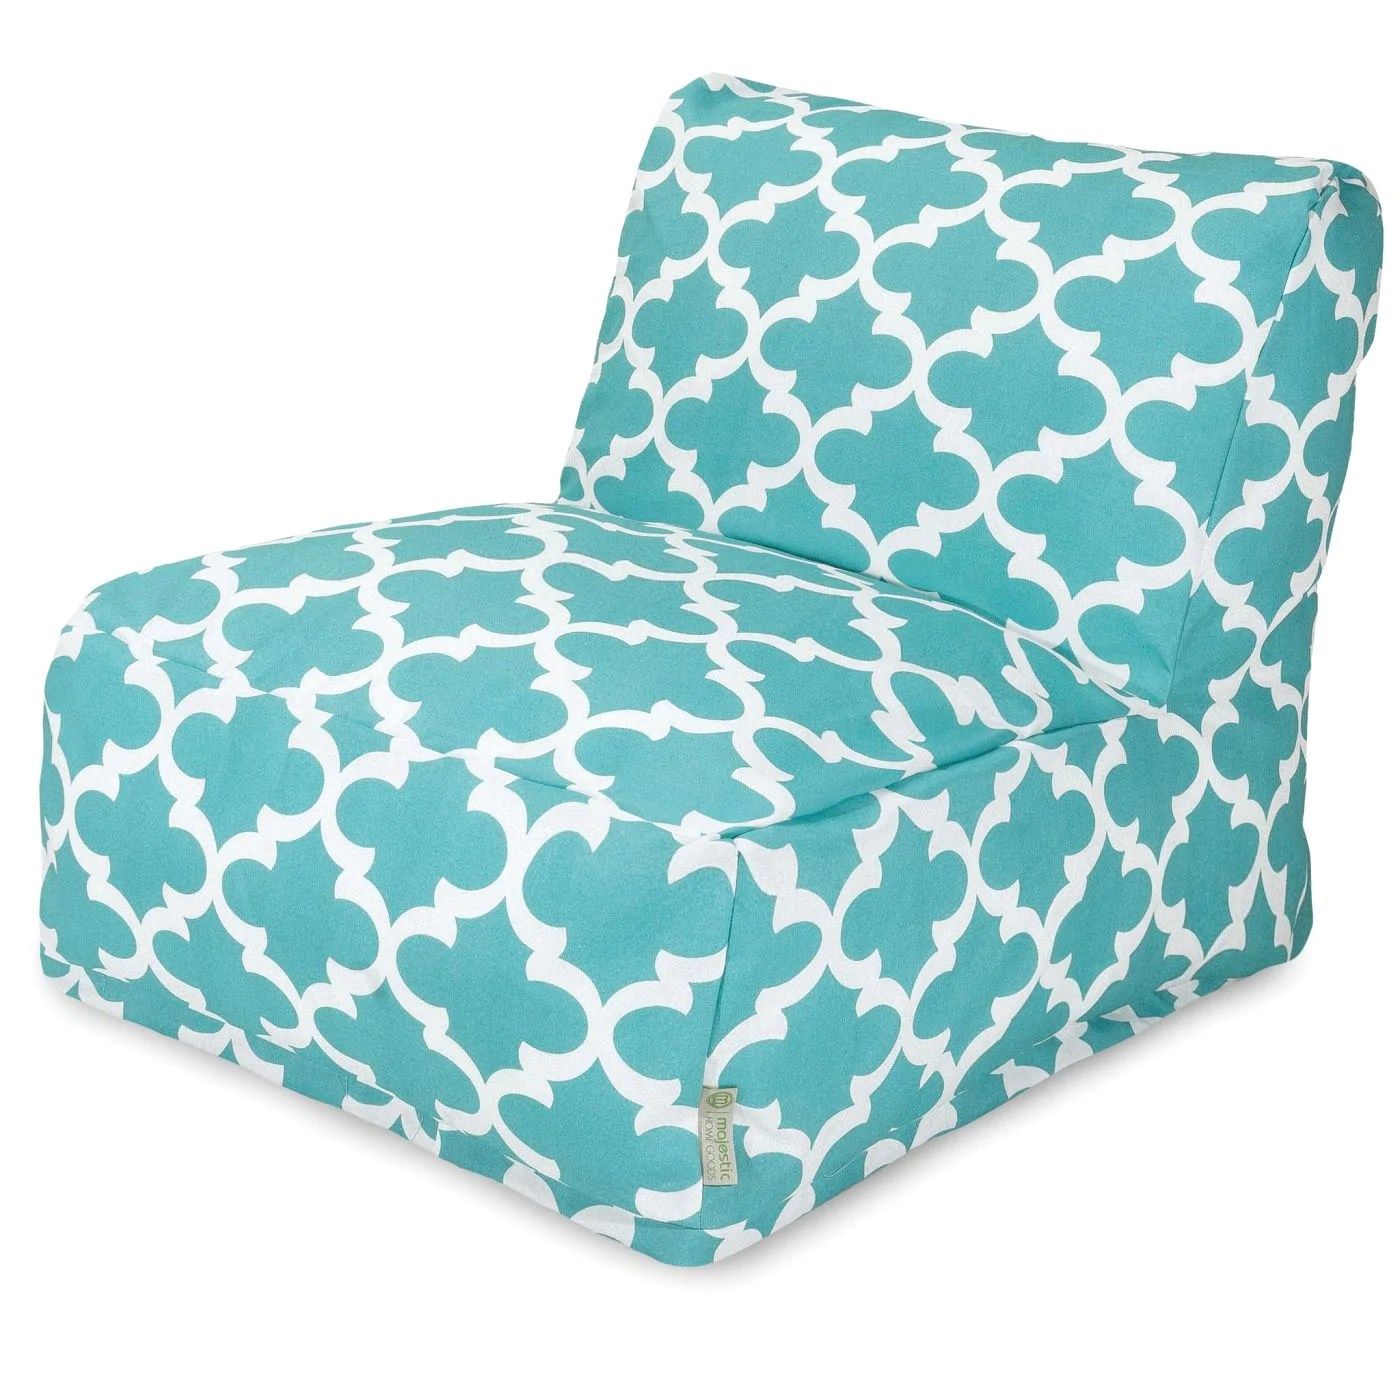 costco bean bag chair laugh learn musical learning majestic home 85907220391 teal trellis lounger